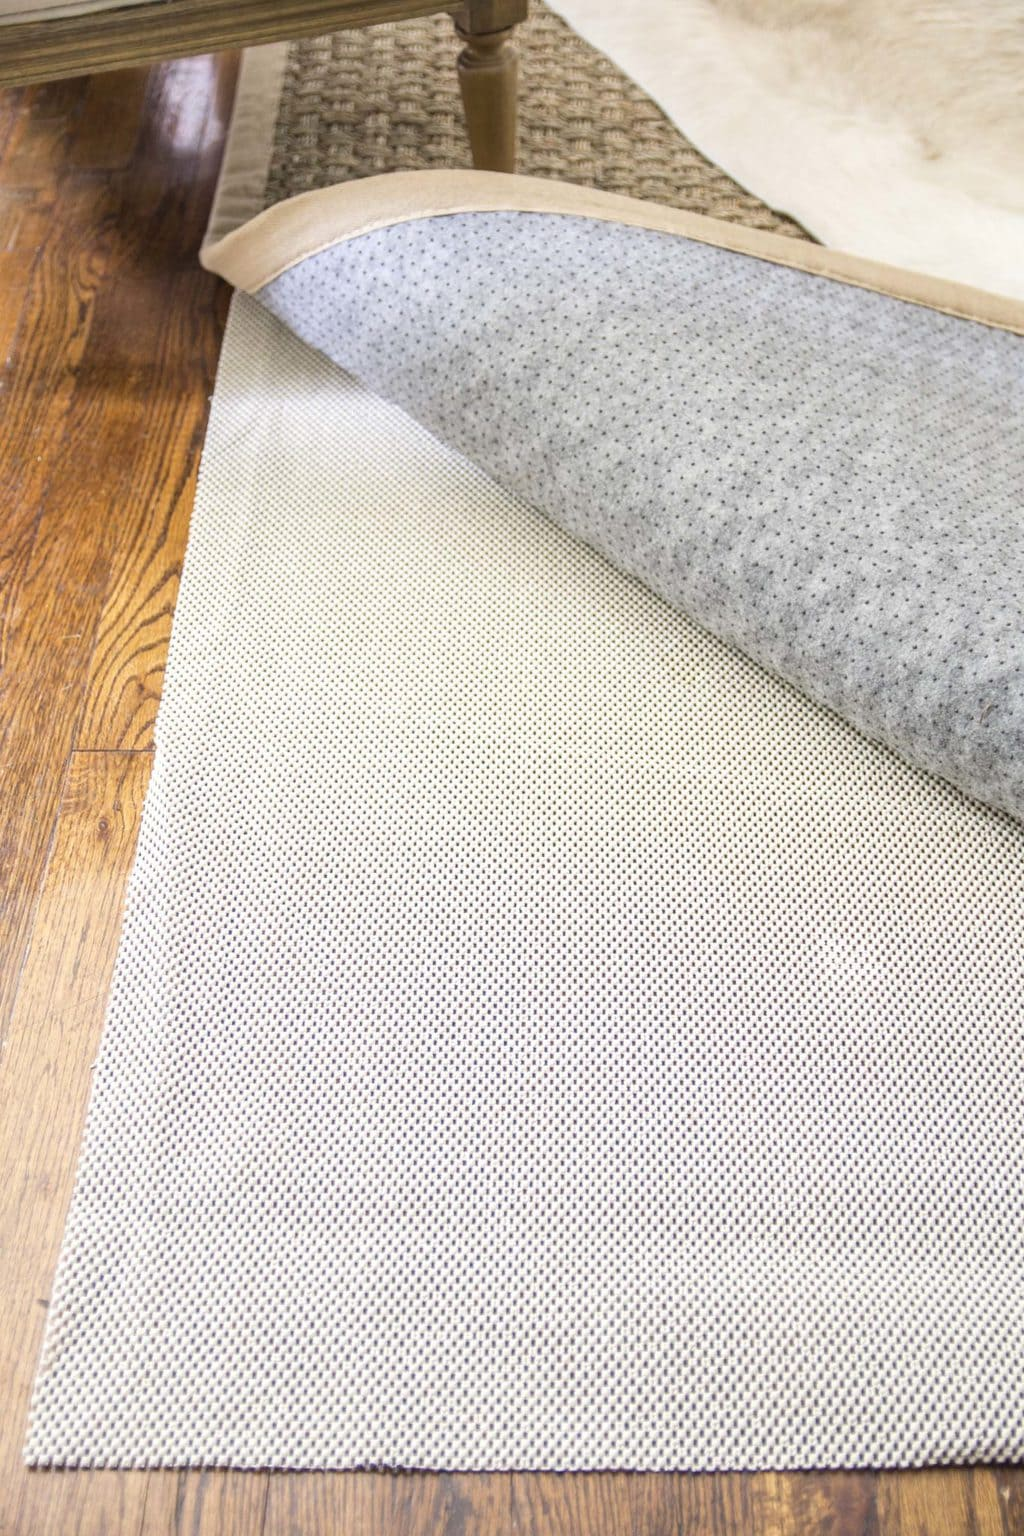 Summer living room refresh with new seagrass rug and RugPadUSA on Thou Swell @thouswellblog